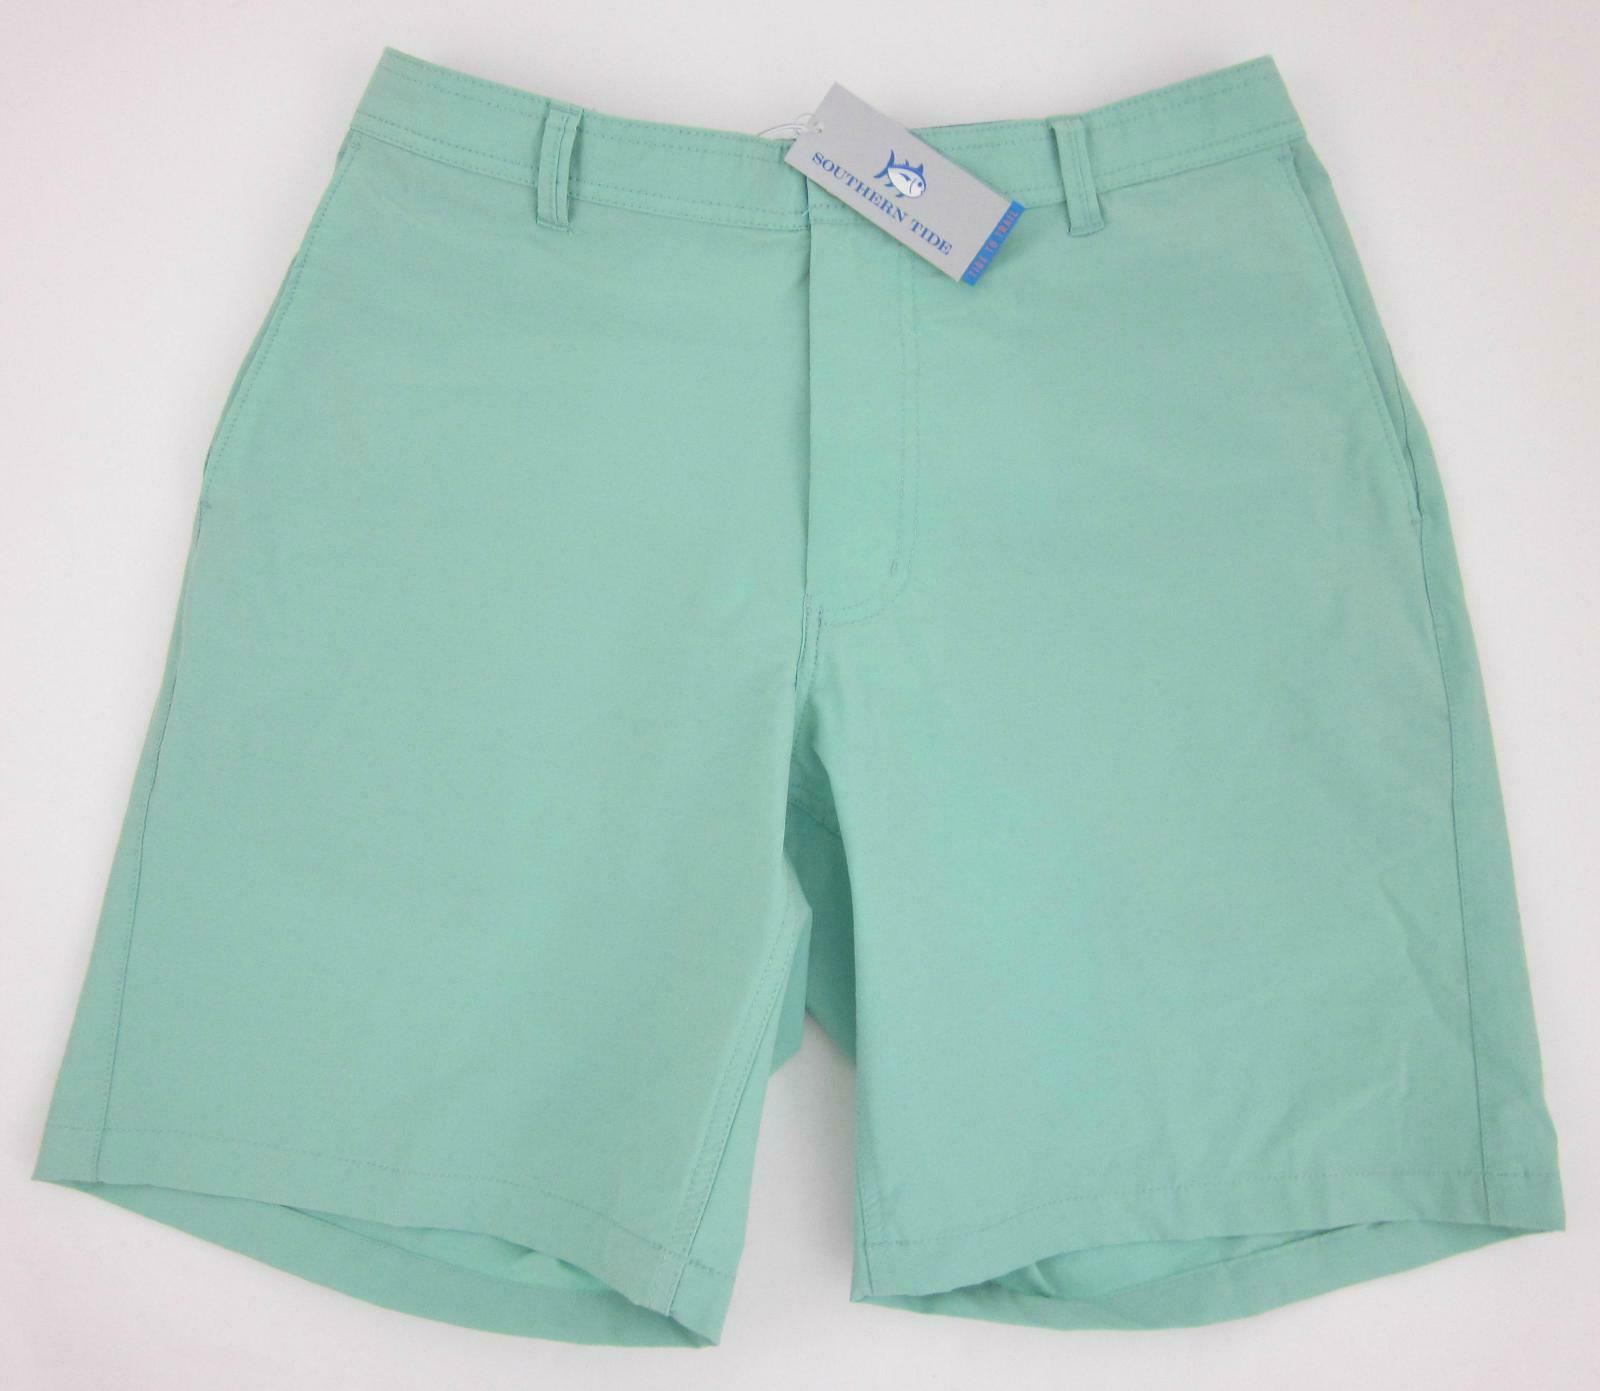 NWT  Southern Tide 'Tide To Trail' Shorts   Heron Green   Medium MSRP